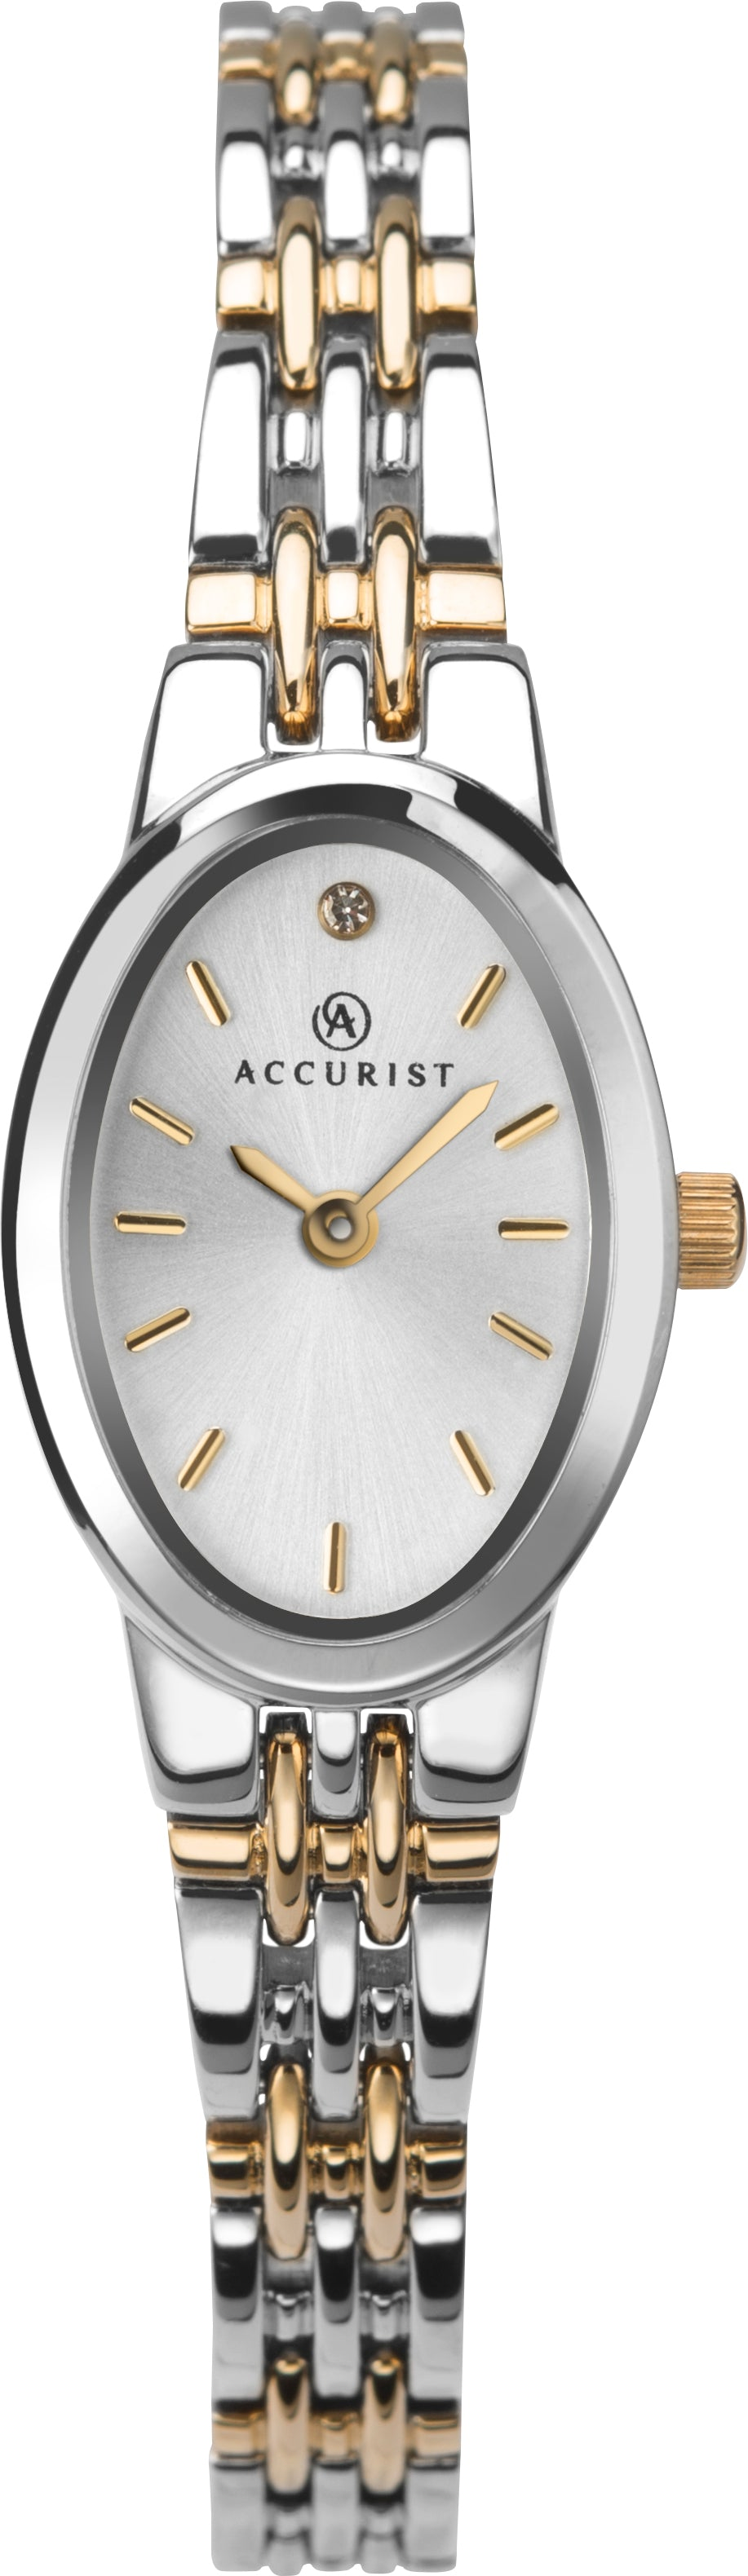 Accurist Women's Dress Bracelet Watch - Product Code - LB1337S